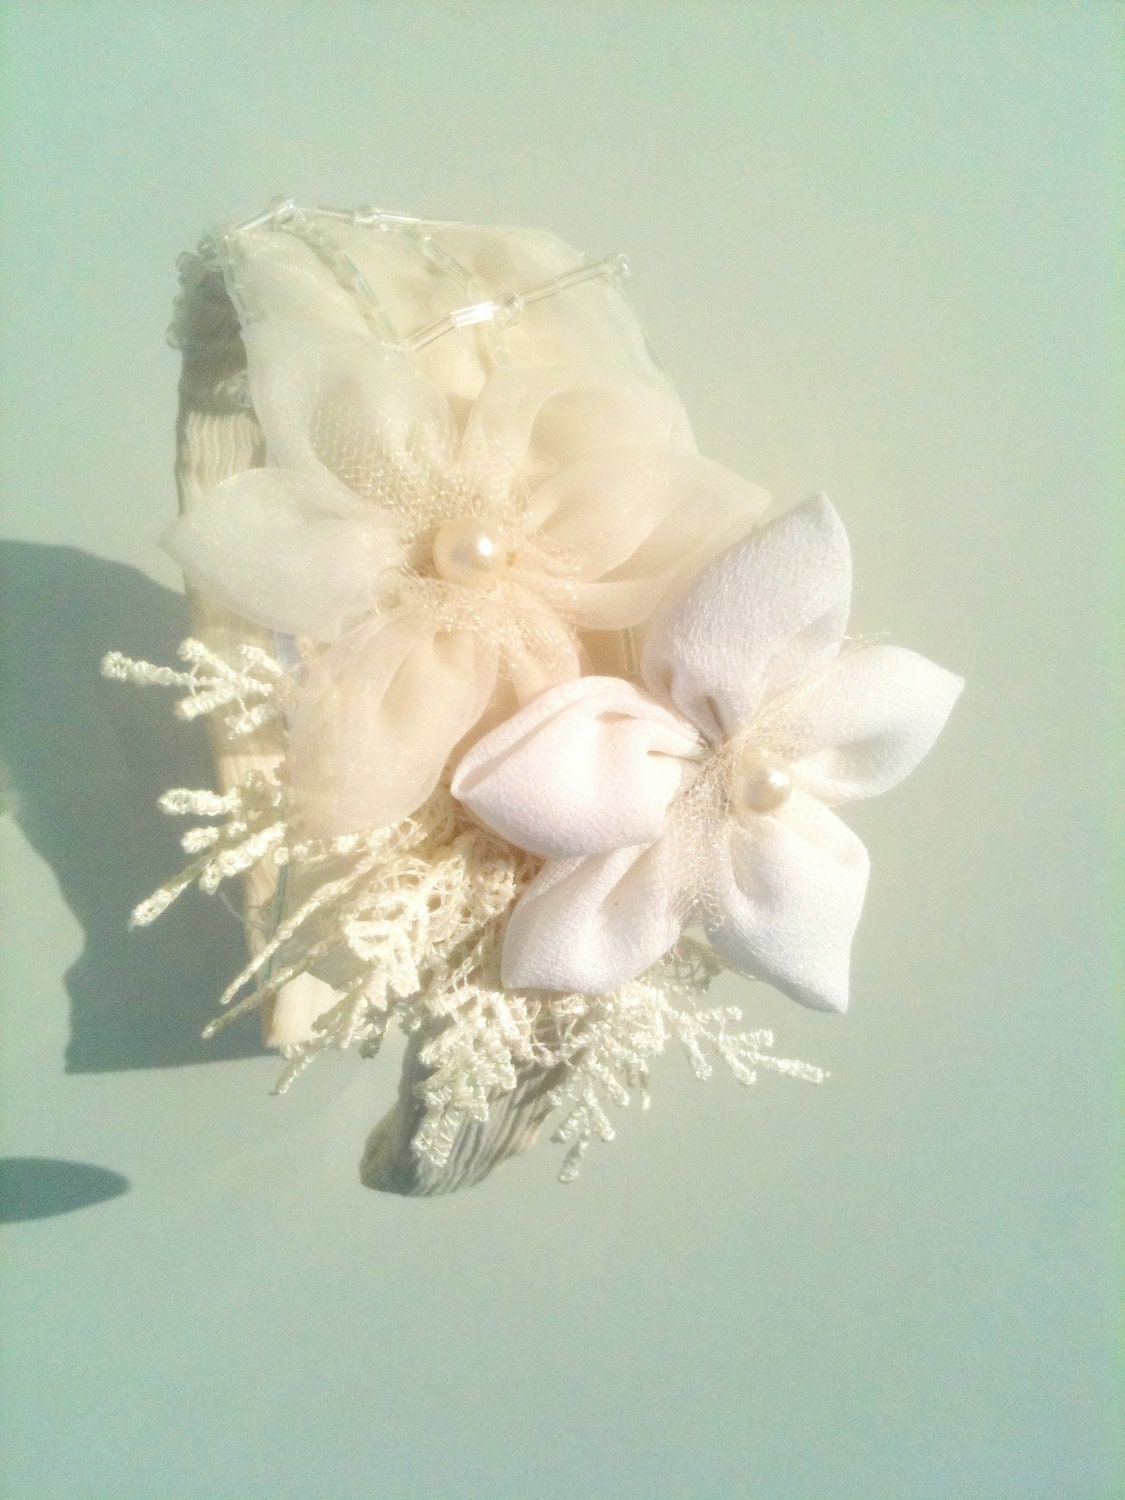 Ivory Lace Bridal Headband, Romantic Bridal Headpiece, Vintage Champagne Hair Flowers, Wedding Accessories,FREE SHIPPING - SparklyLittleStar